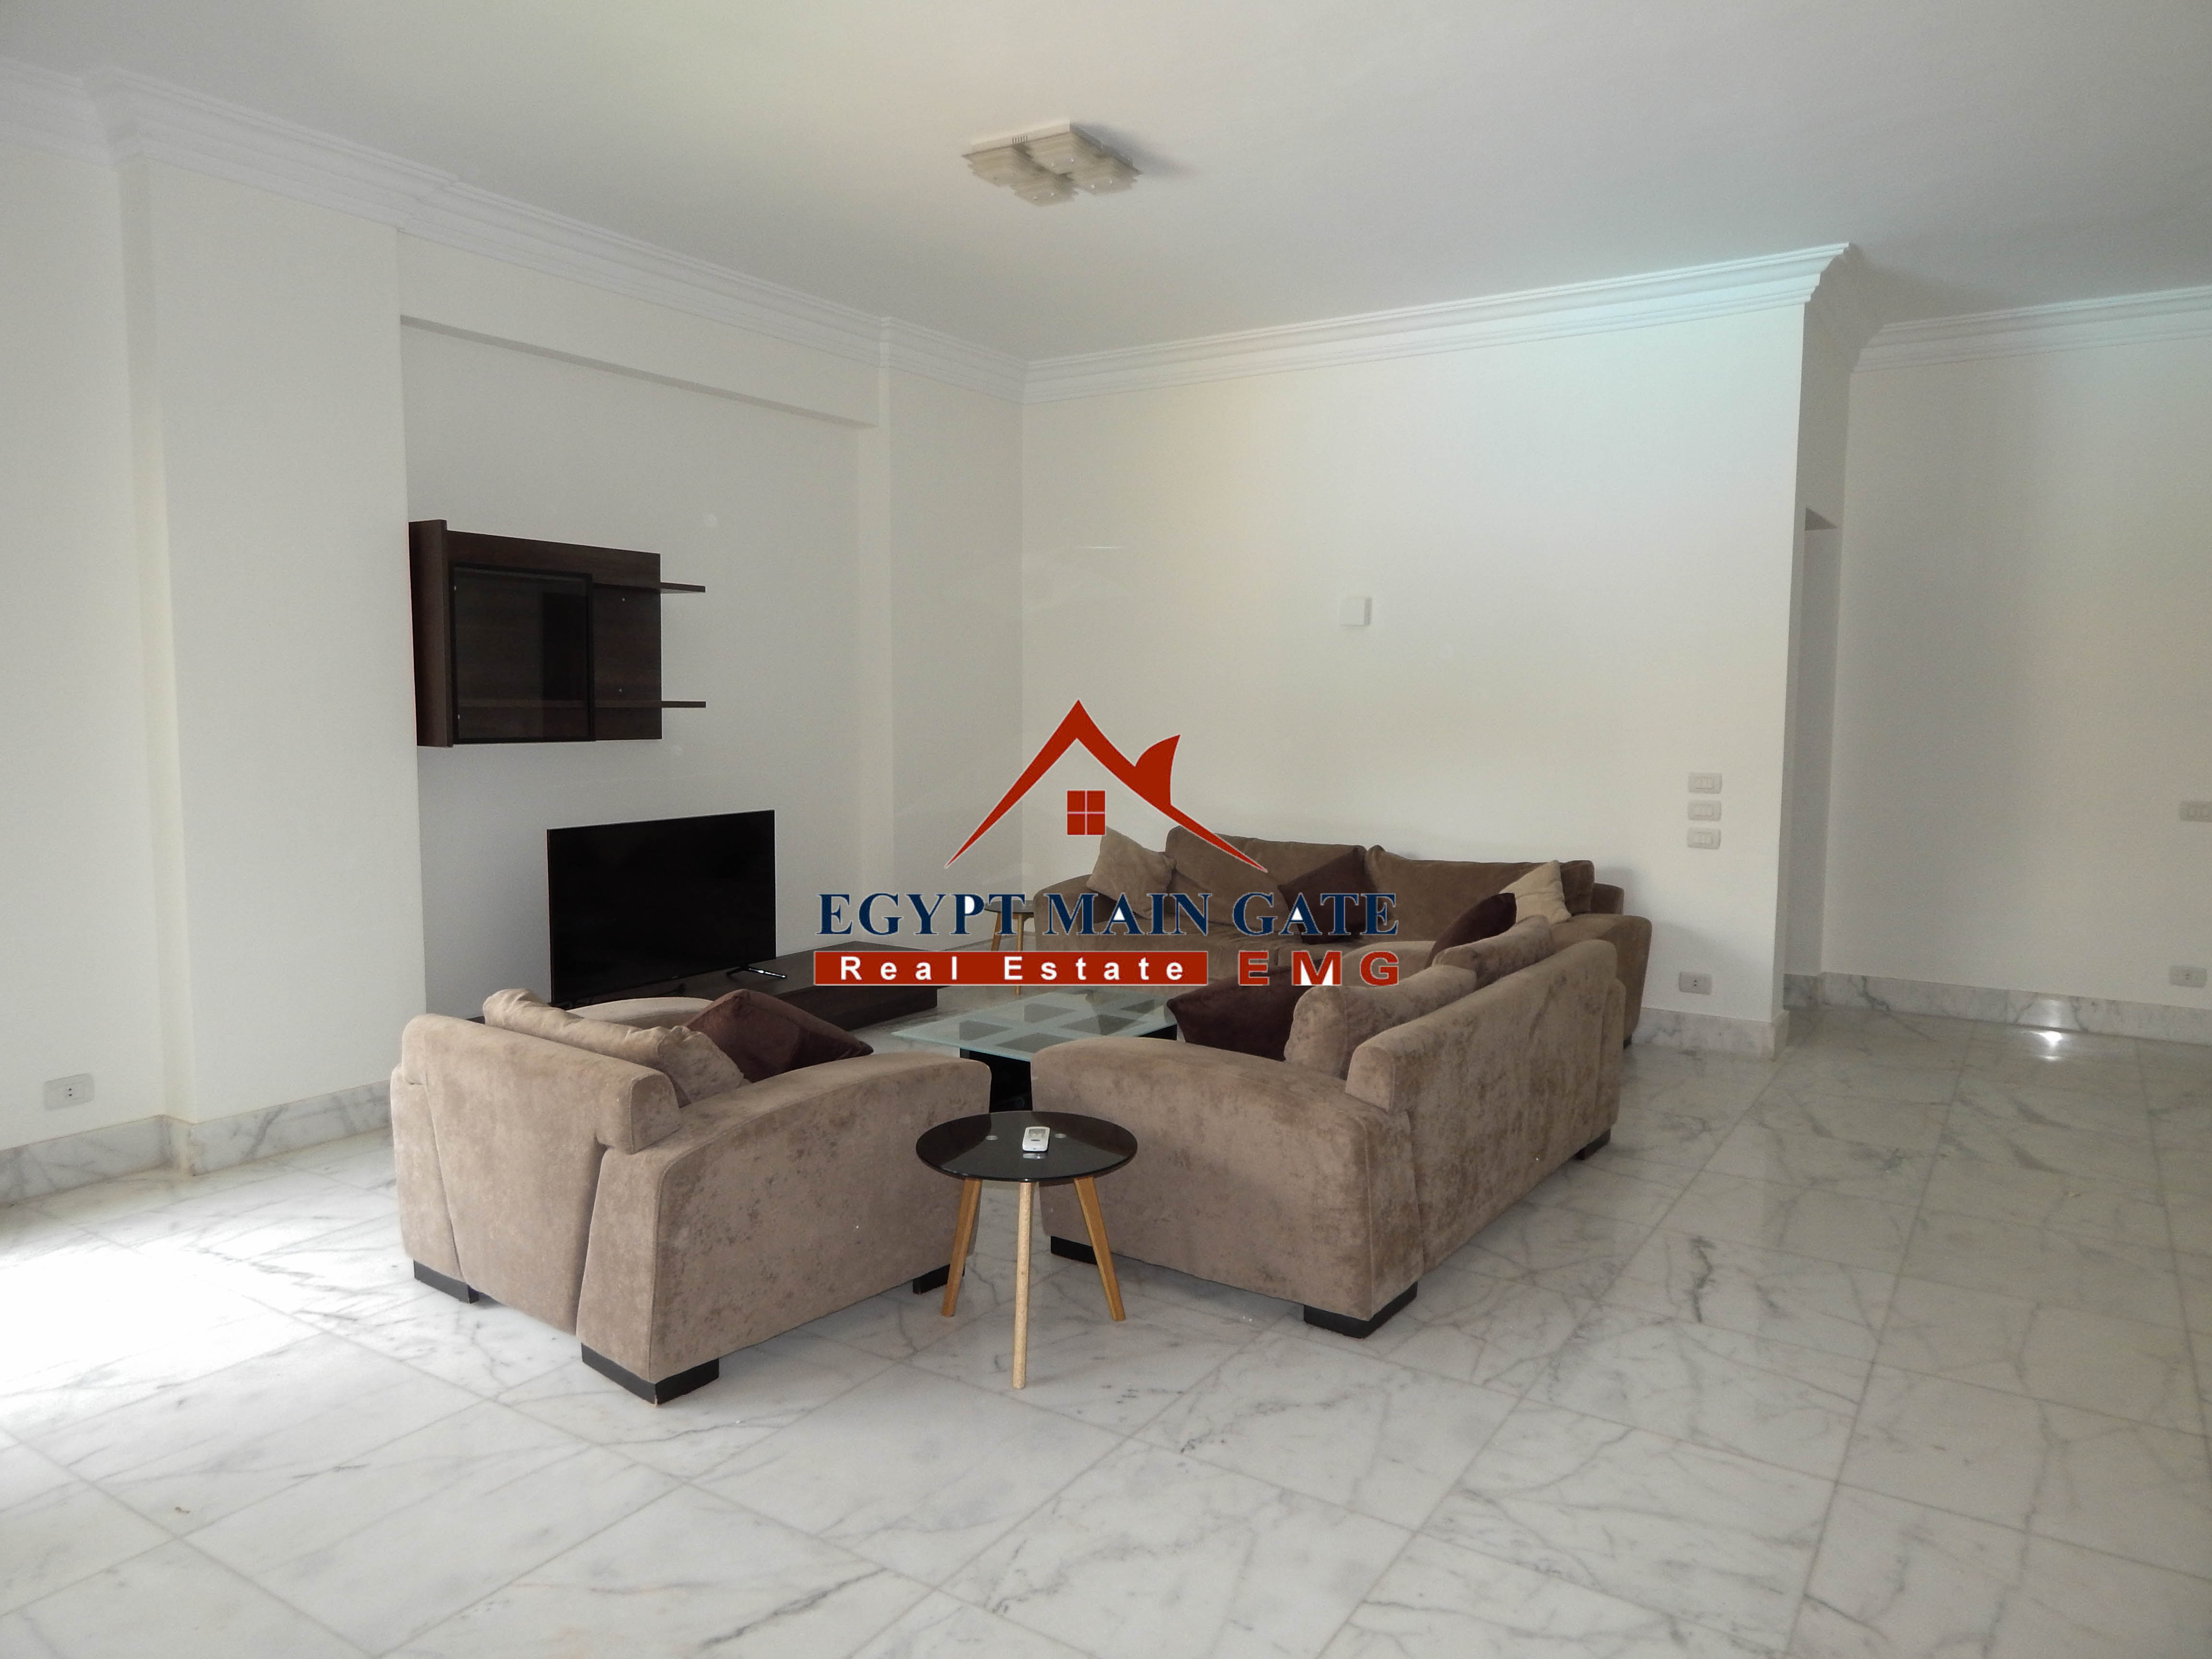 Egyptmaingate Modern Flat For Rent In Maadi Sarayat In A Compound